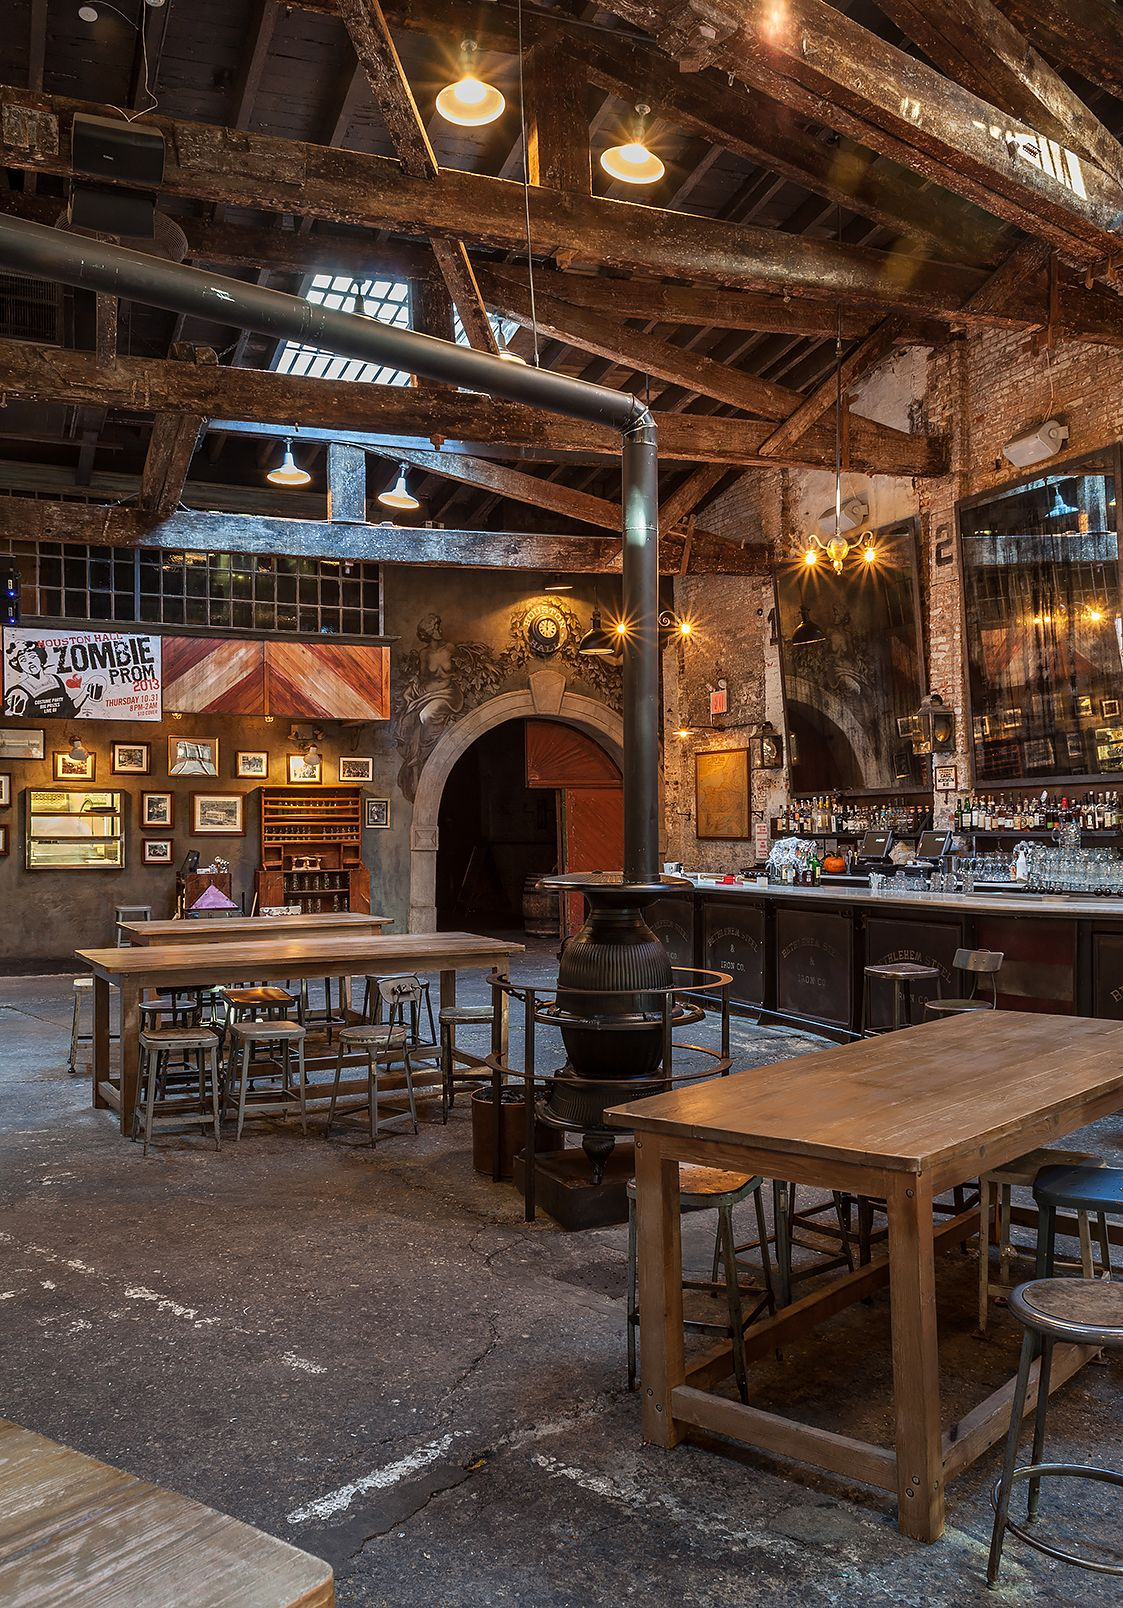 Houston Hall is a beer hall located in New York City's